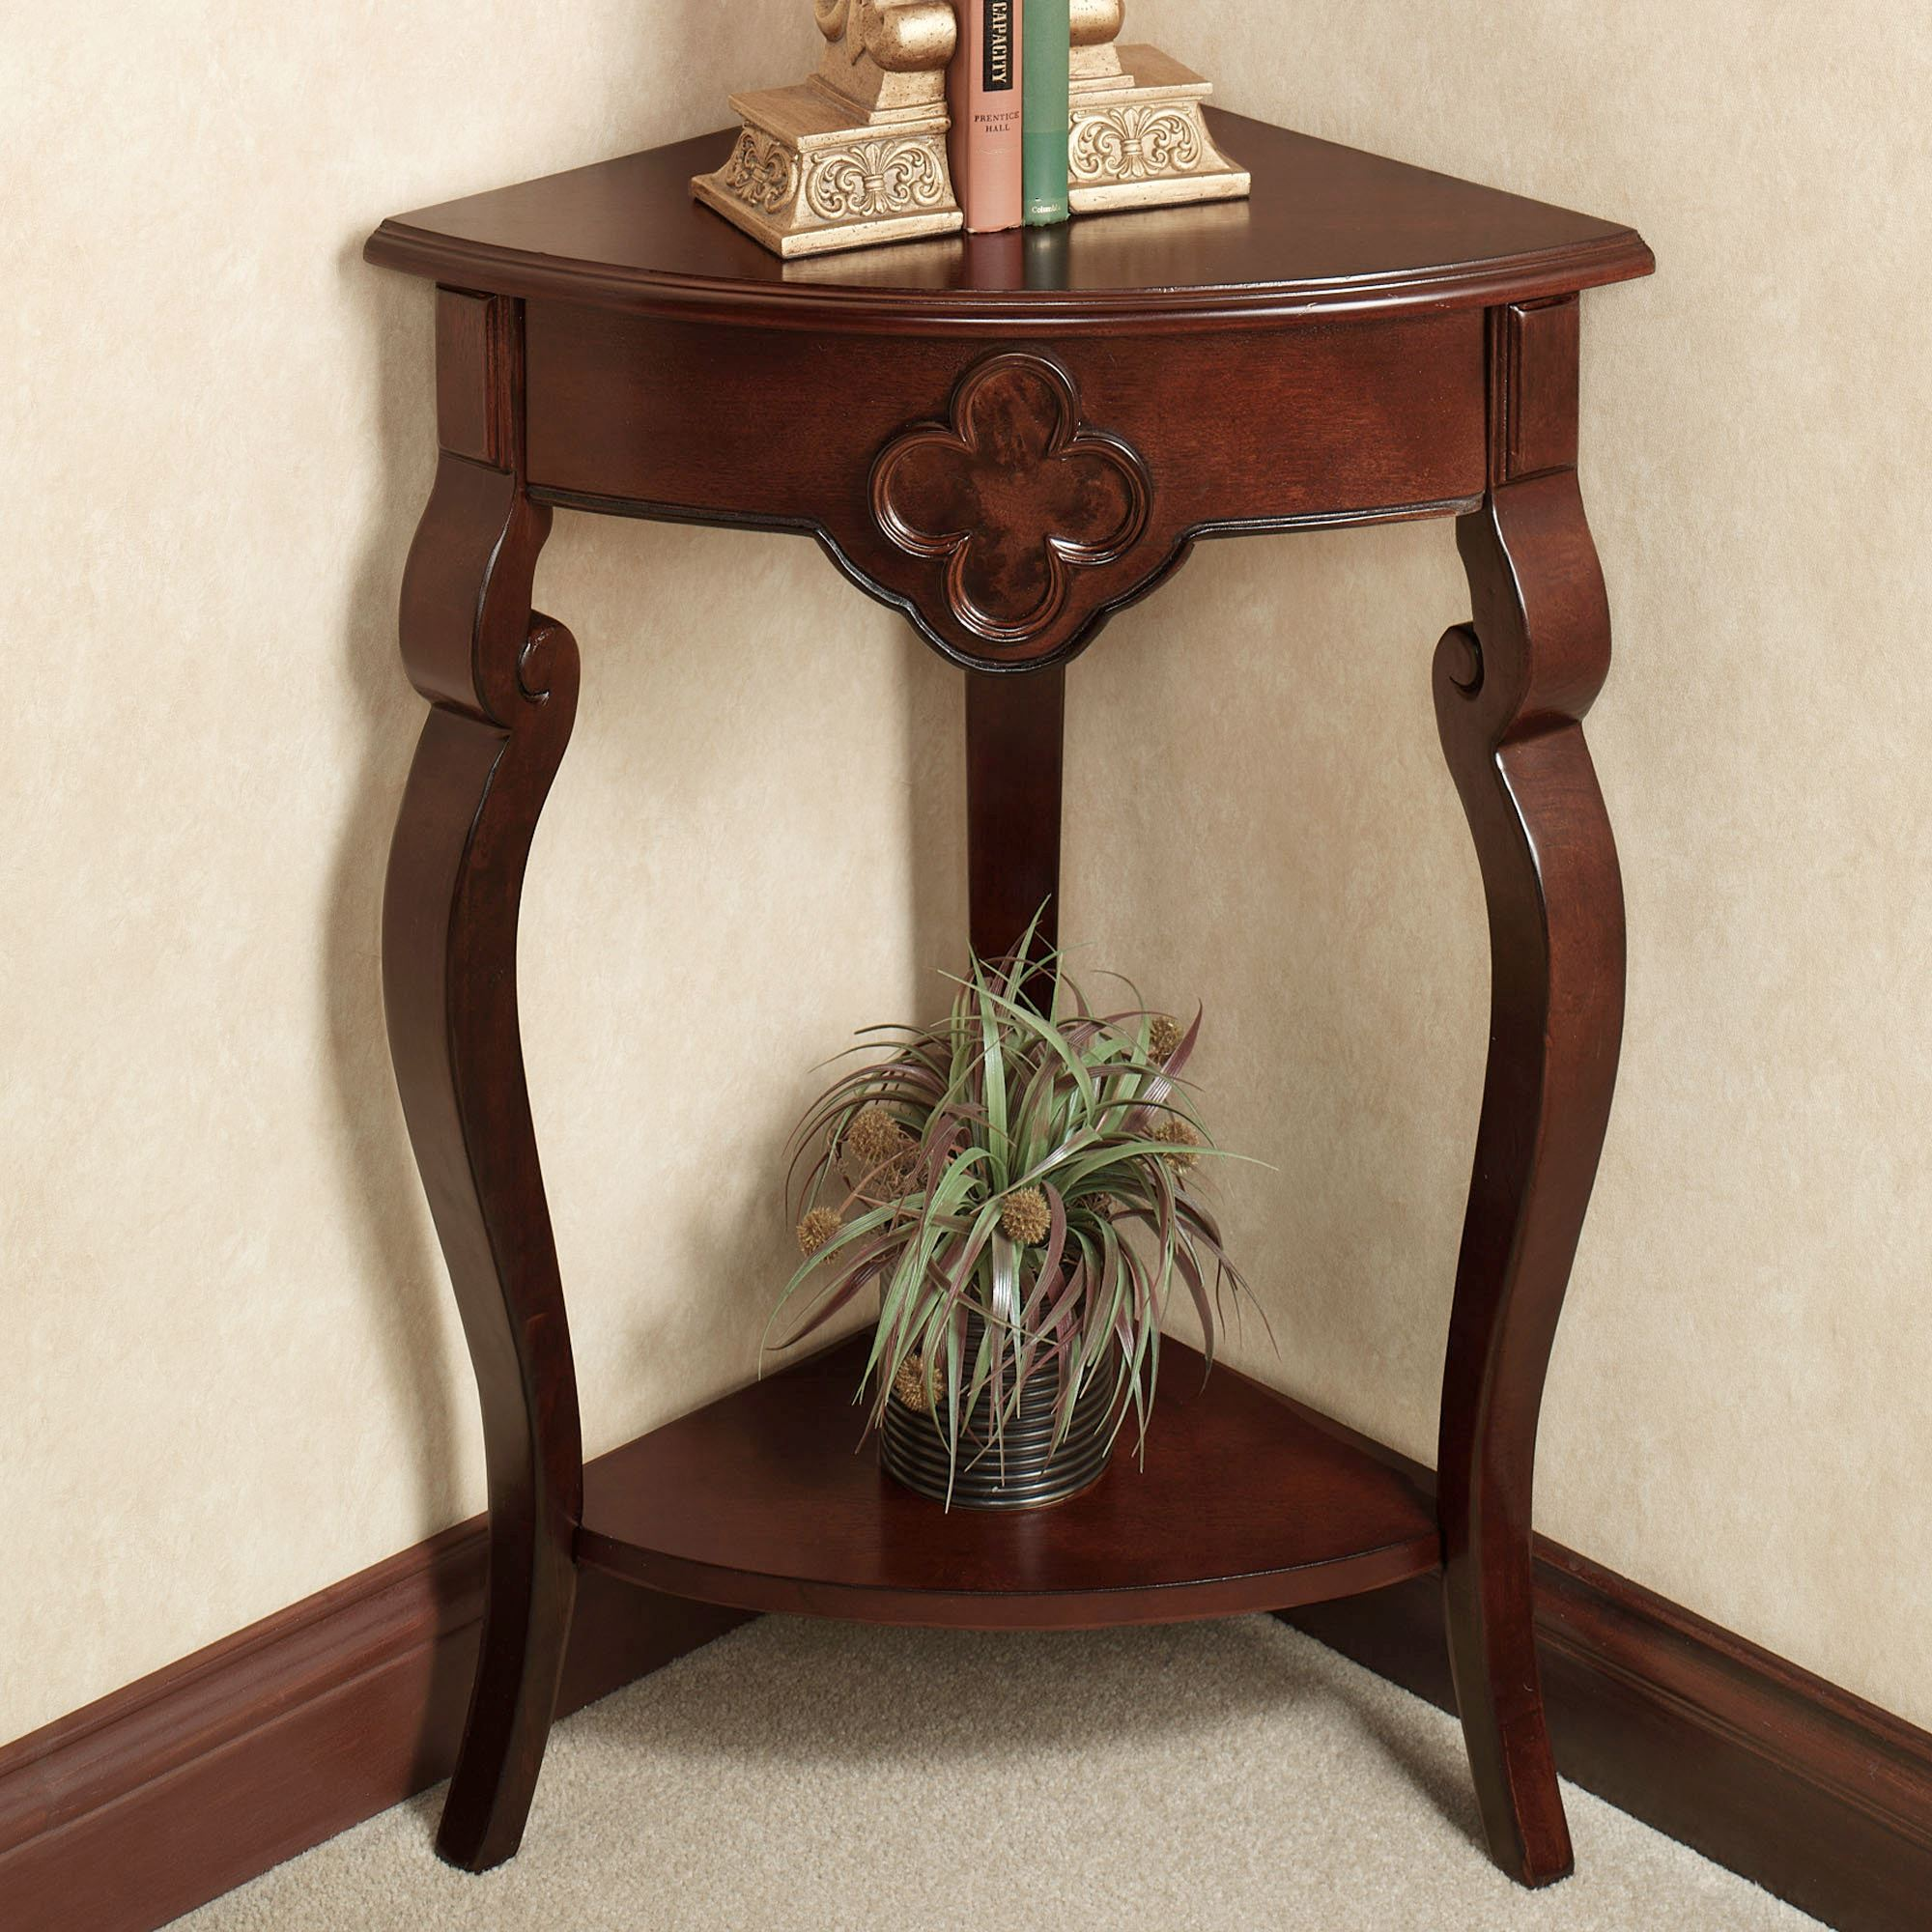 accent table decor ideas round small decorating white rustic end interior cast iron patio tables only lamp base bench legs ethan allen american impressions armoire crushed velvet